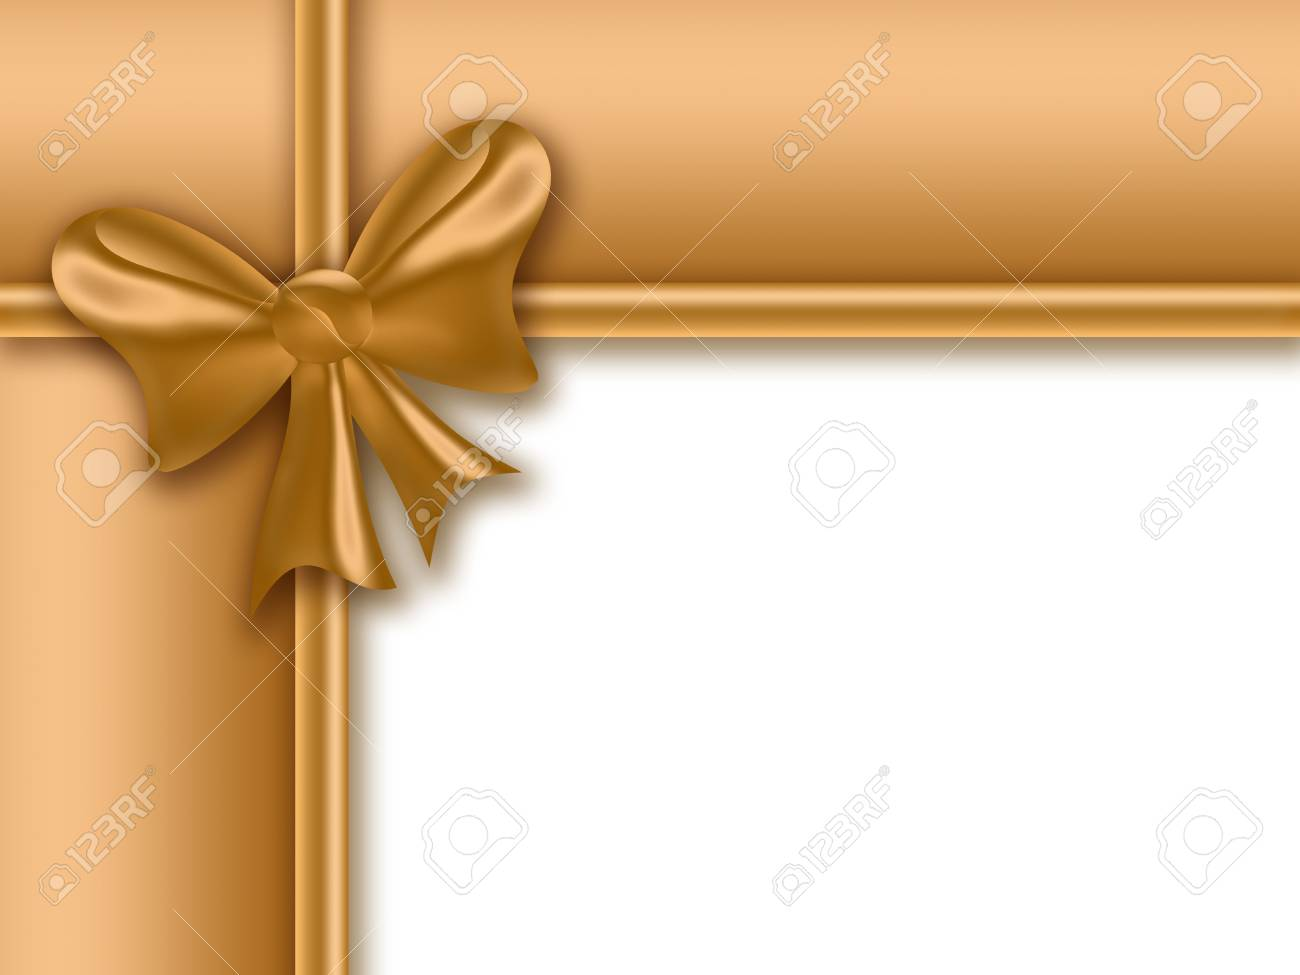 golden gift frame with a bow on a white background Stock Photo - 6419781